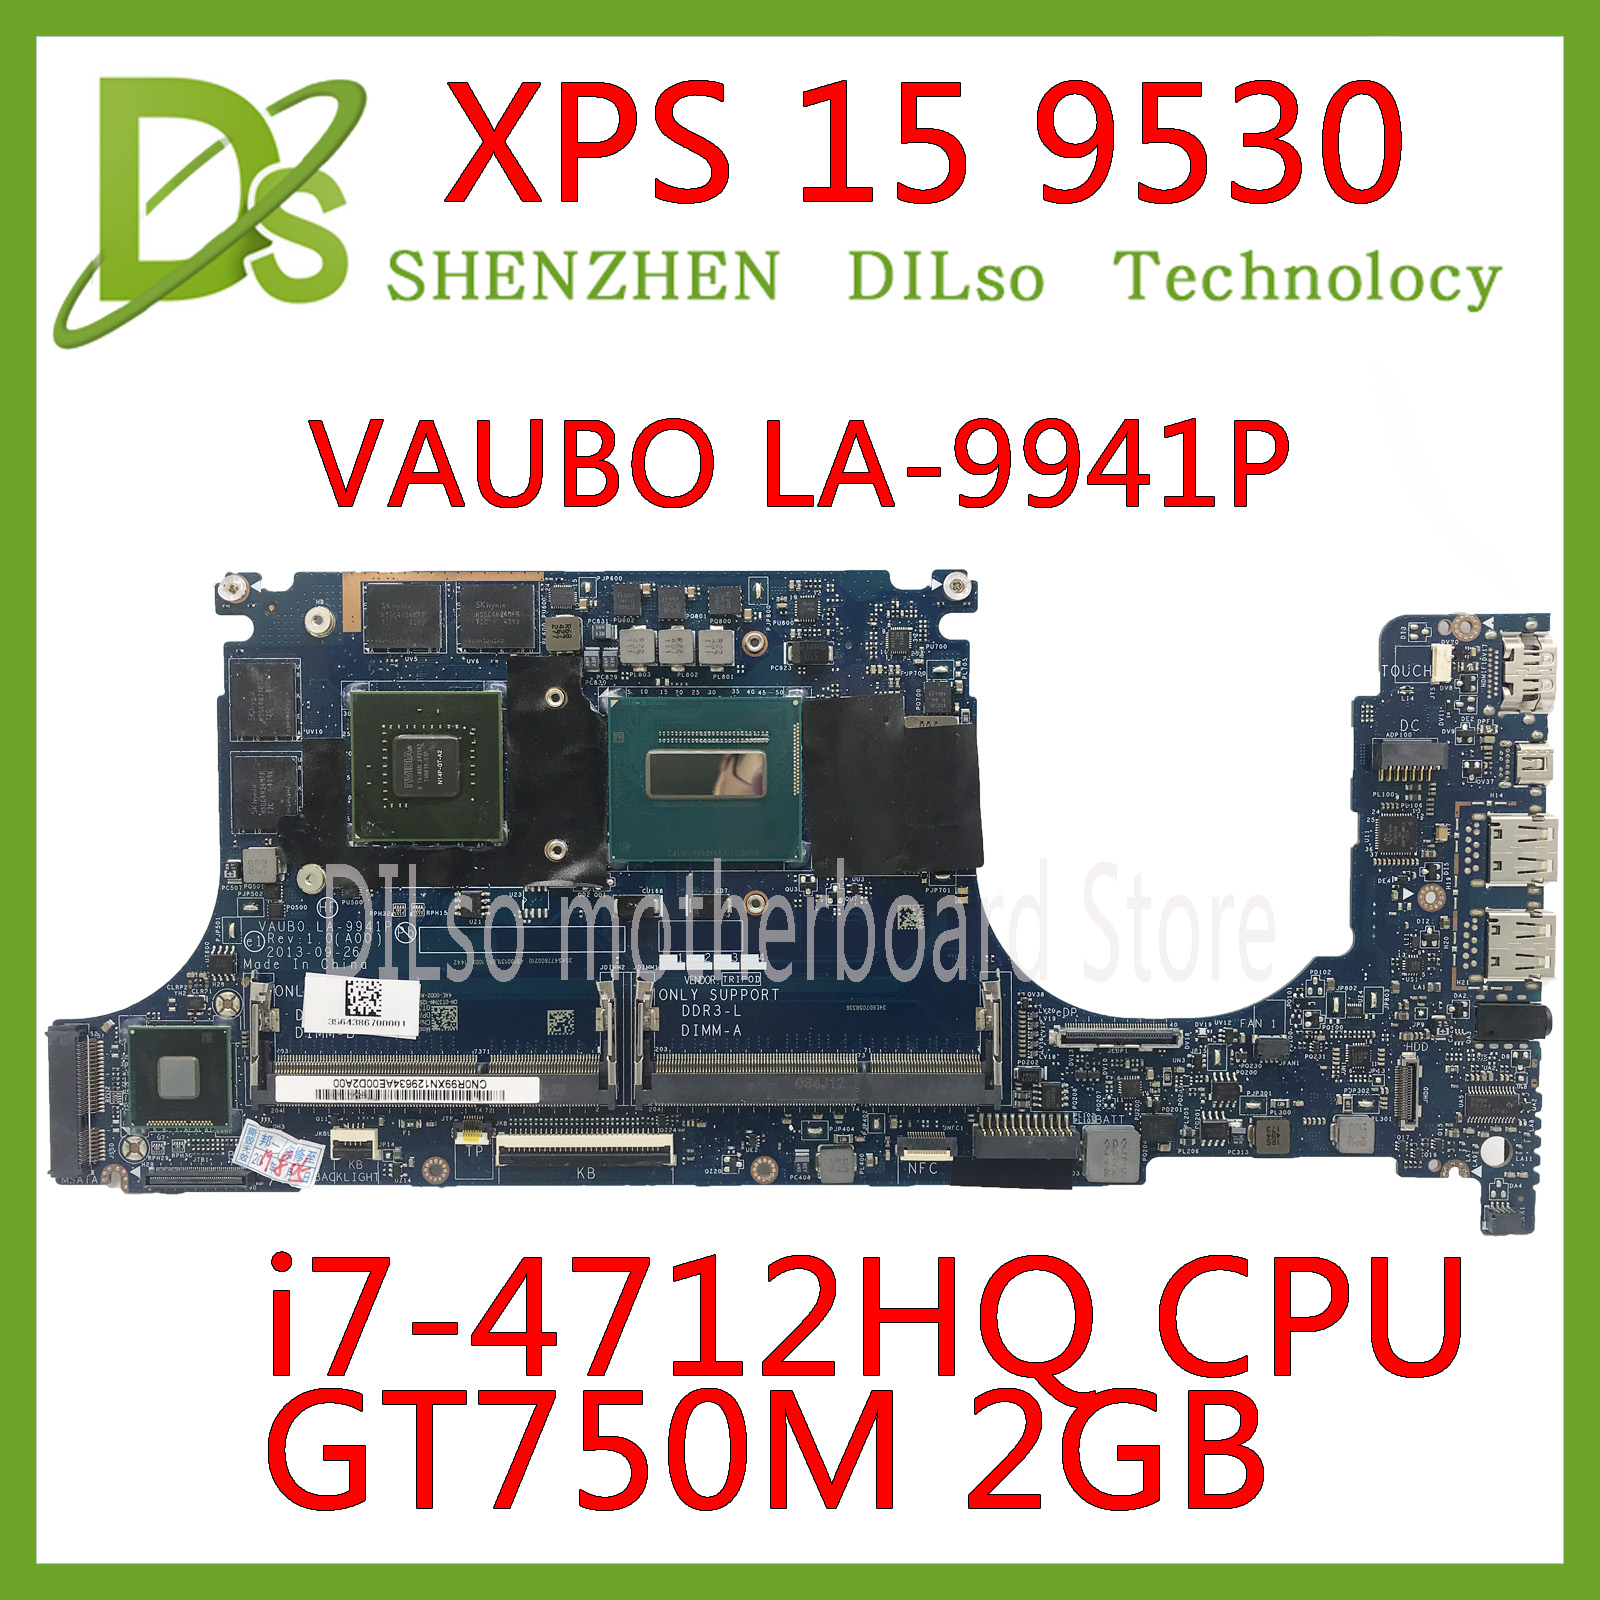 KEFU CN-0R99XN 0R99XN Motherboard FOR Dell XPS 15 9530 Laptop Motherboard LA-9941P I7-4712HQ CPU GT750M 2GB Tested 100% Work